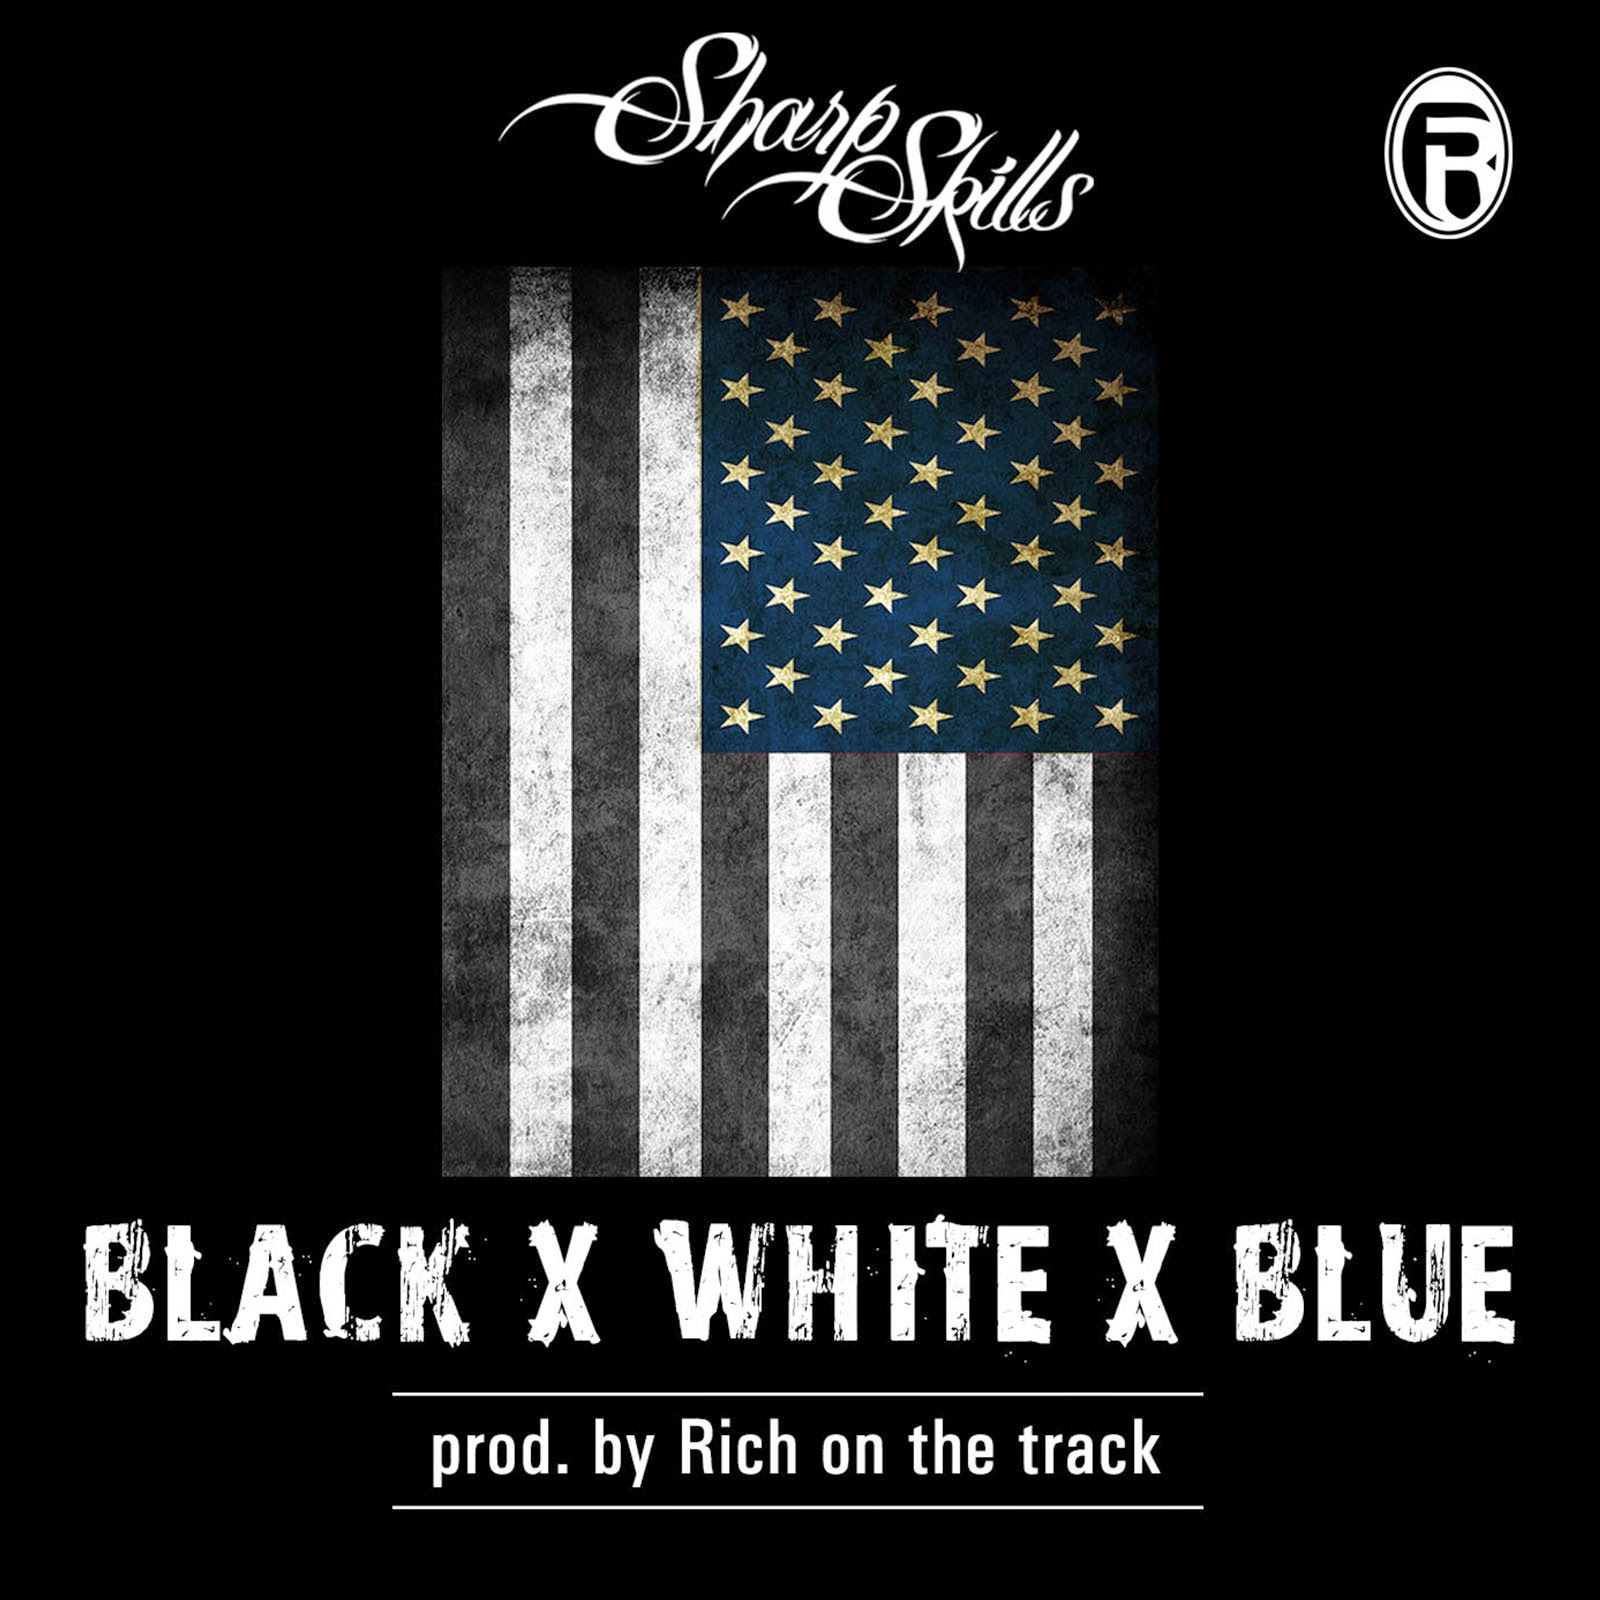 "Buy Sharp Skills's New Single 'Black, White, and Blue"" (Click on Cover to Buy)"